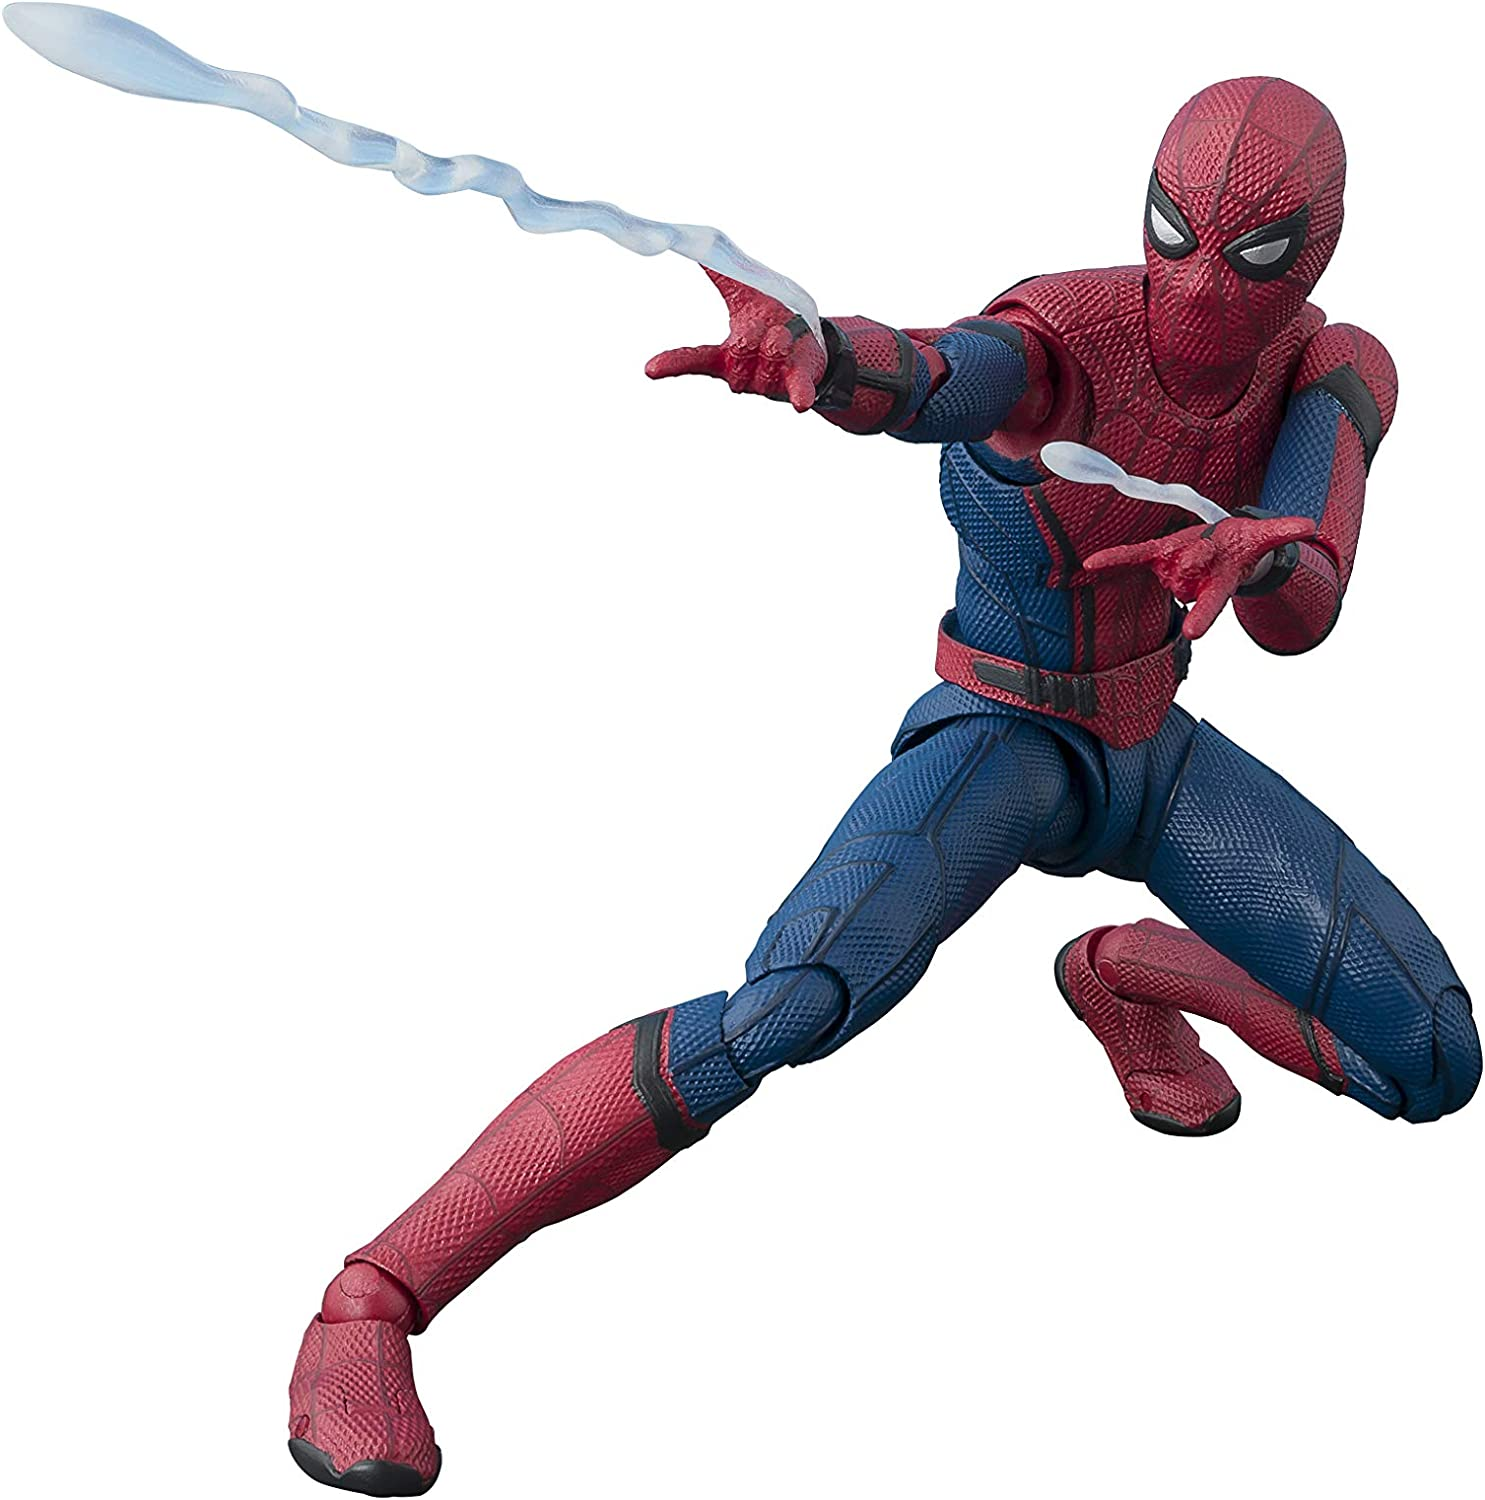 Bandai S.H. Figuarts Spider Man (Spider Man: Far from Home)